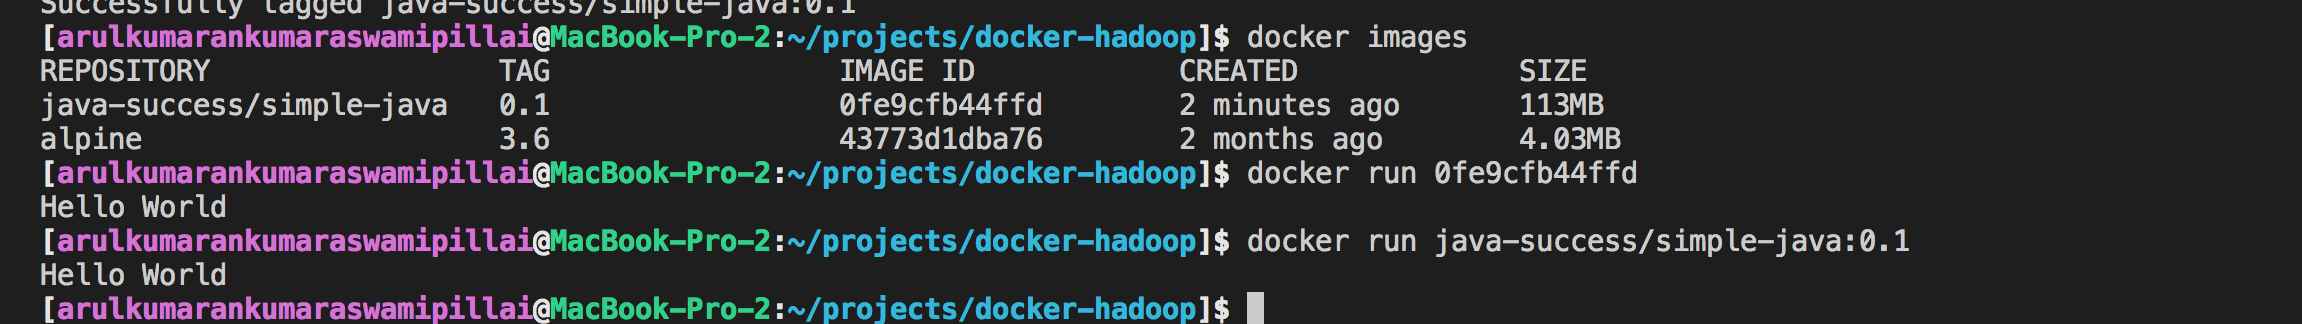 run.bat executed within a Docker container